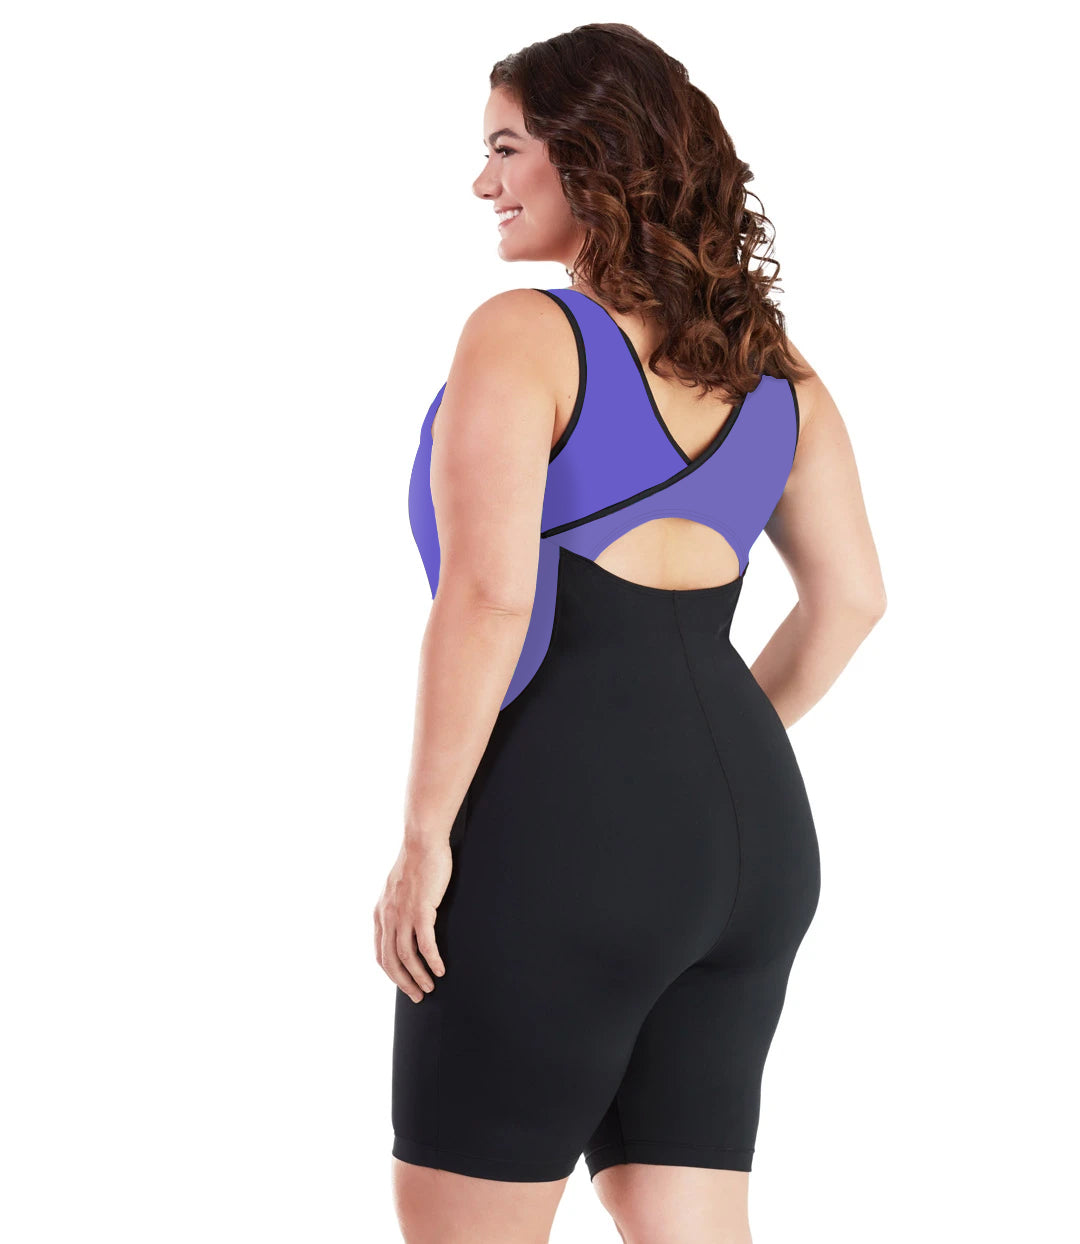 AquaSport Crossback Aquatard Purple and Black-Swim One Piece-SFO Apparel-XL-Purple/Black-JunoActive